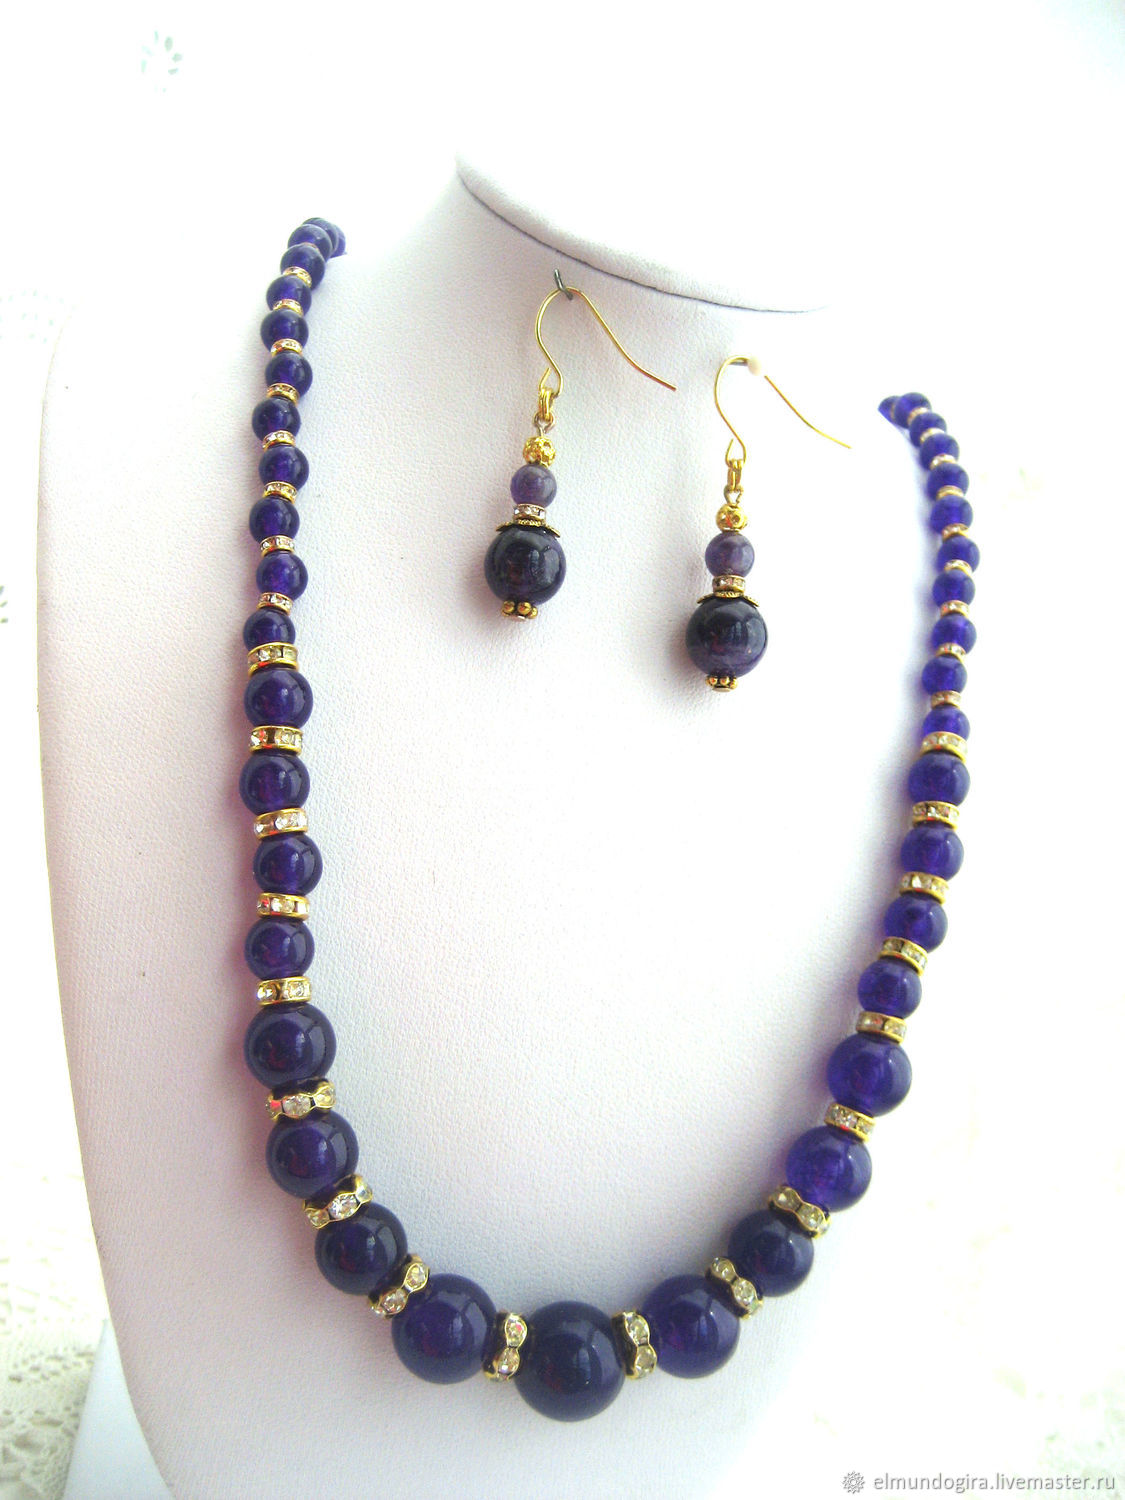 Real aAmethyst gemstone necklace and earrings set, Jewelry Sets, Moscow,  Фото №1